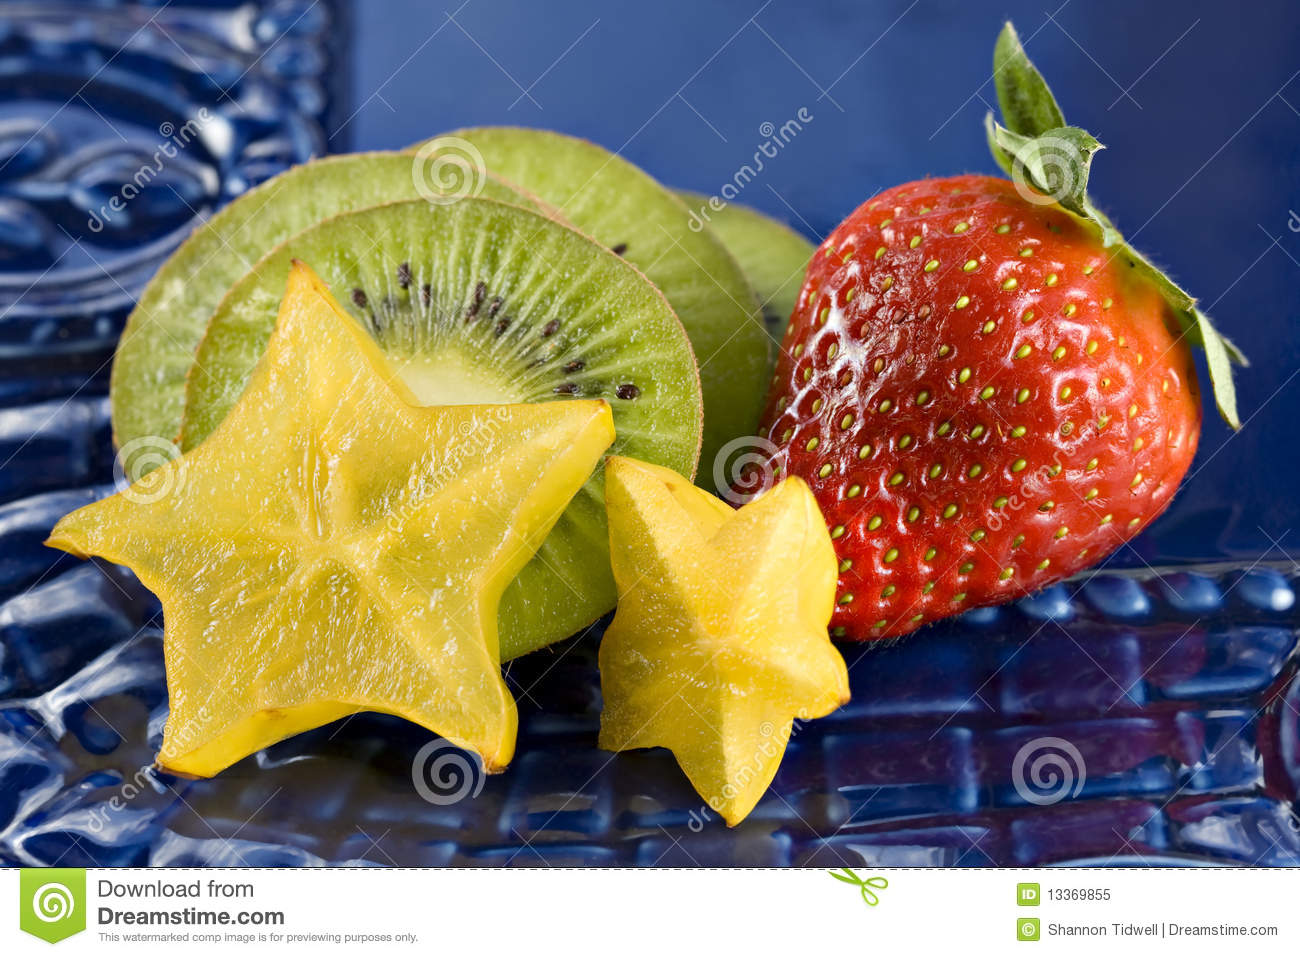 strawberry-kiwi-star-fruit-13369855.jpg